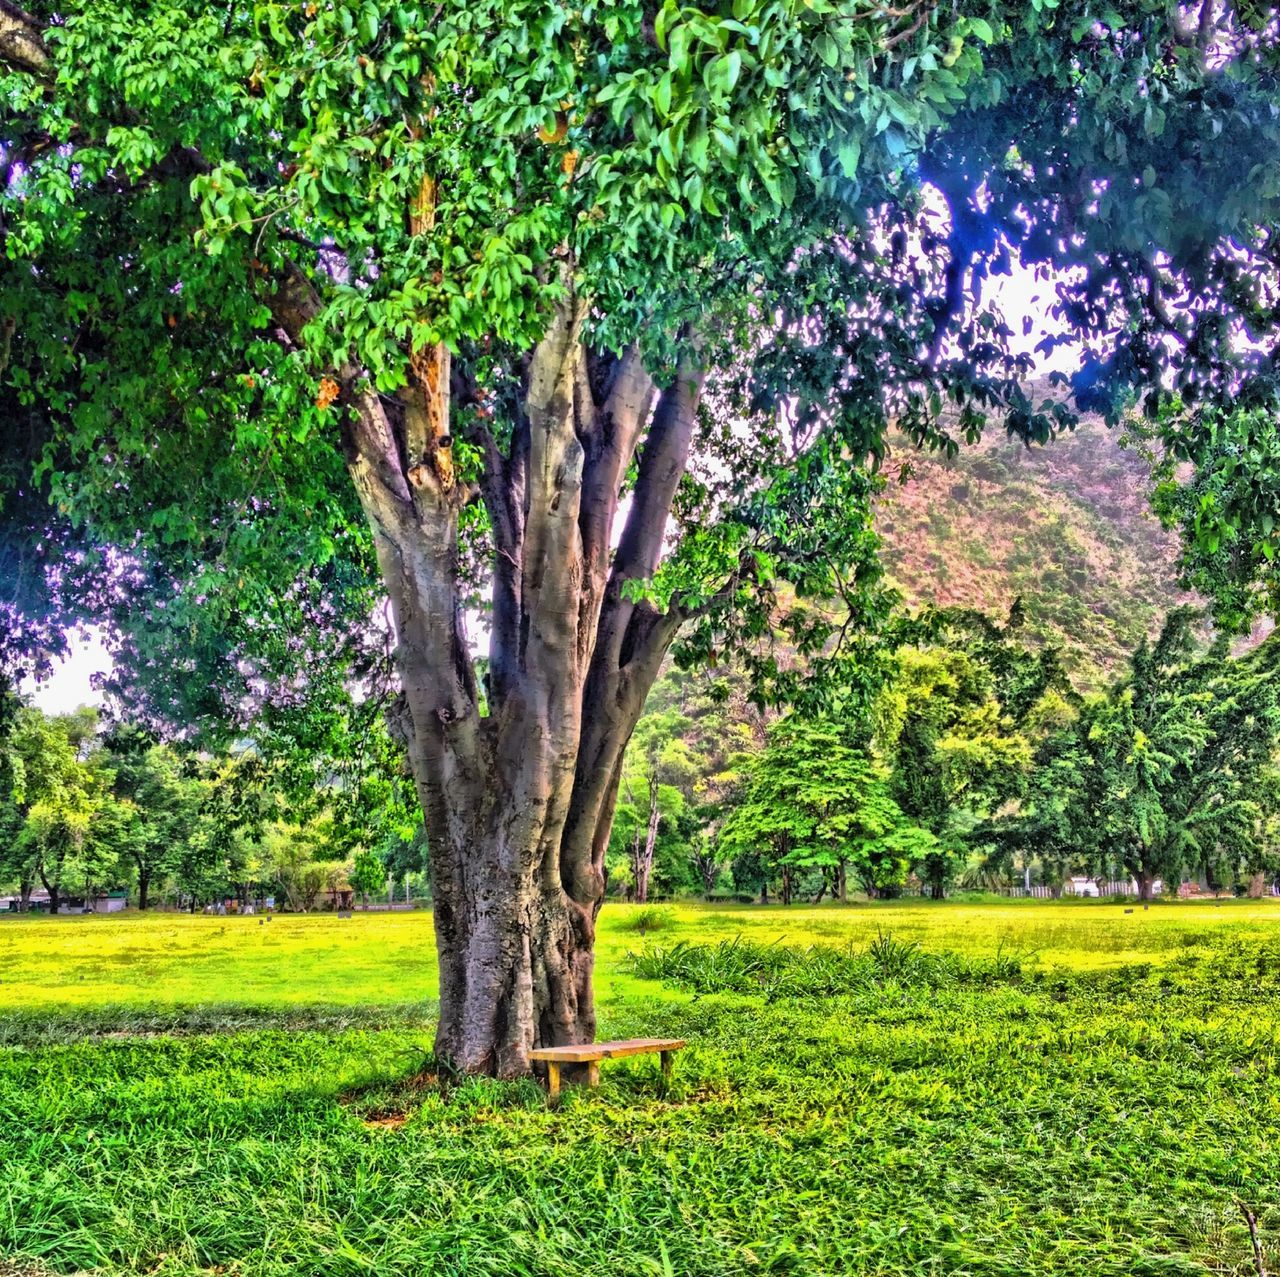 tree, growth, nature, grass, green color, tree trunk, plant, landscape, branch, tranquility, no people, beauty in nature, outdoors, day